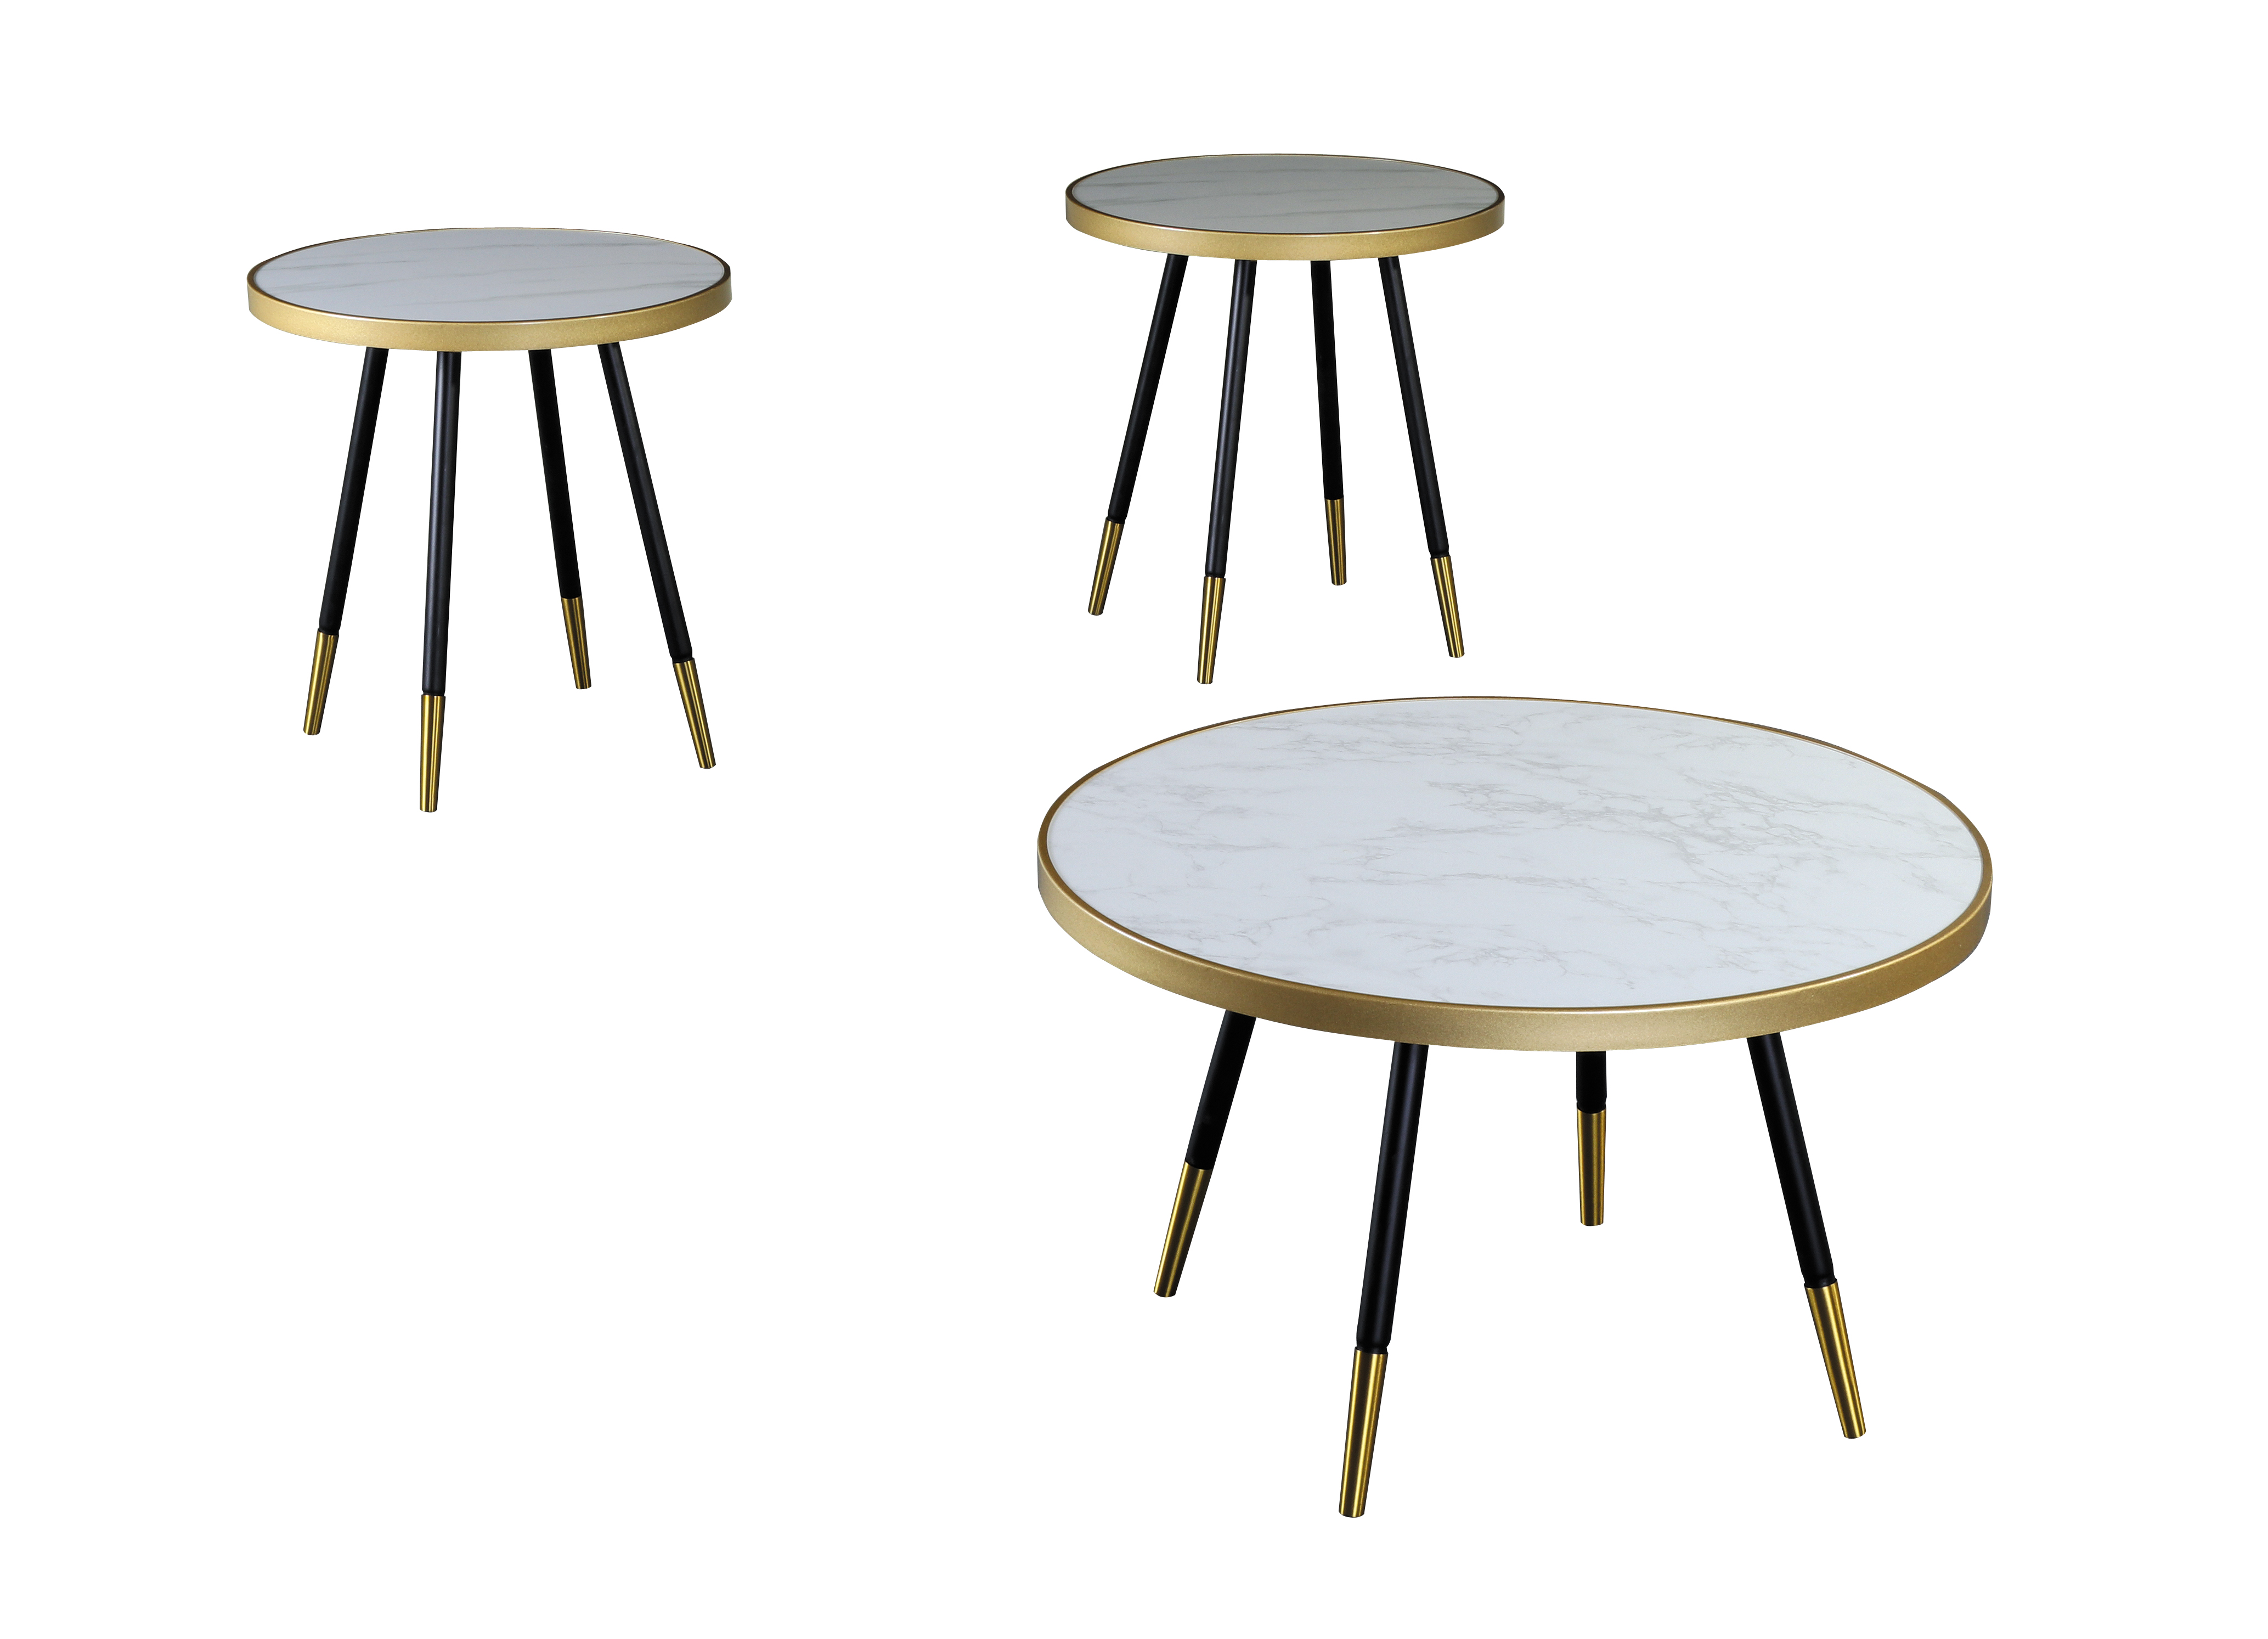 GS-CT917 3pc coffee table set